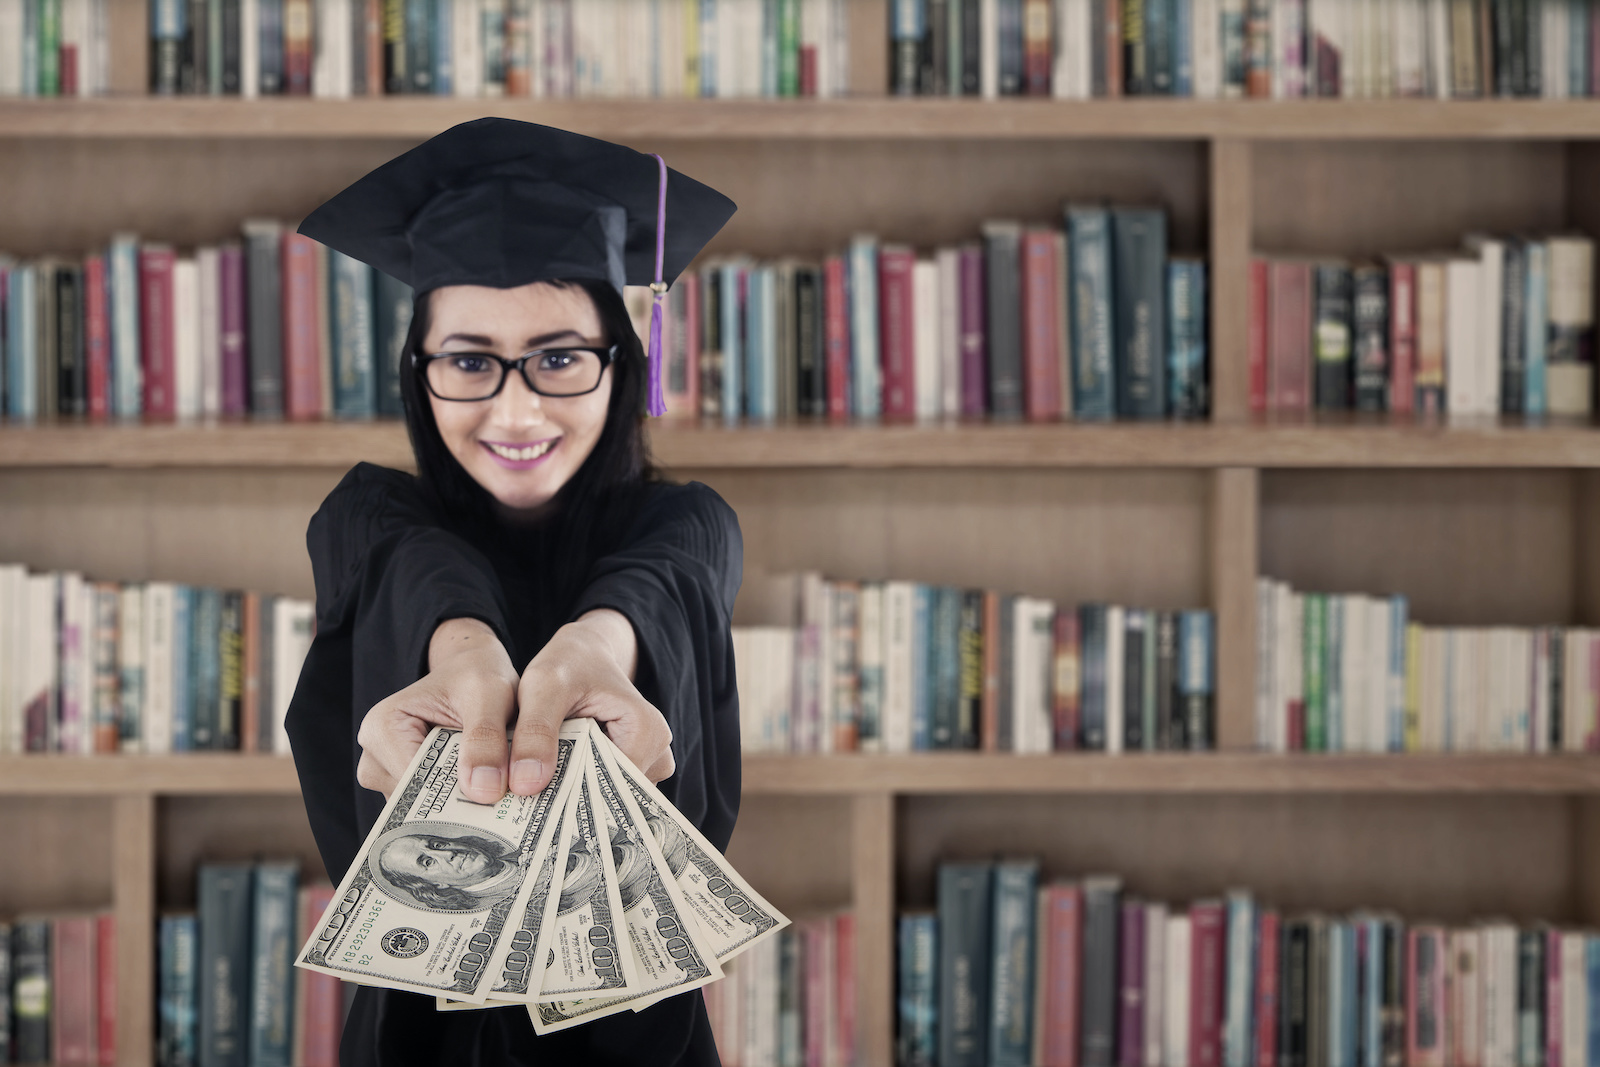 Subsidized vs unsubsidized student loans: A college grad holds hundred dollar bills in her outstretched hands